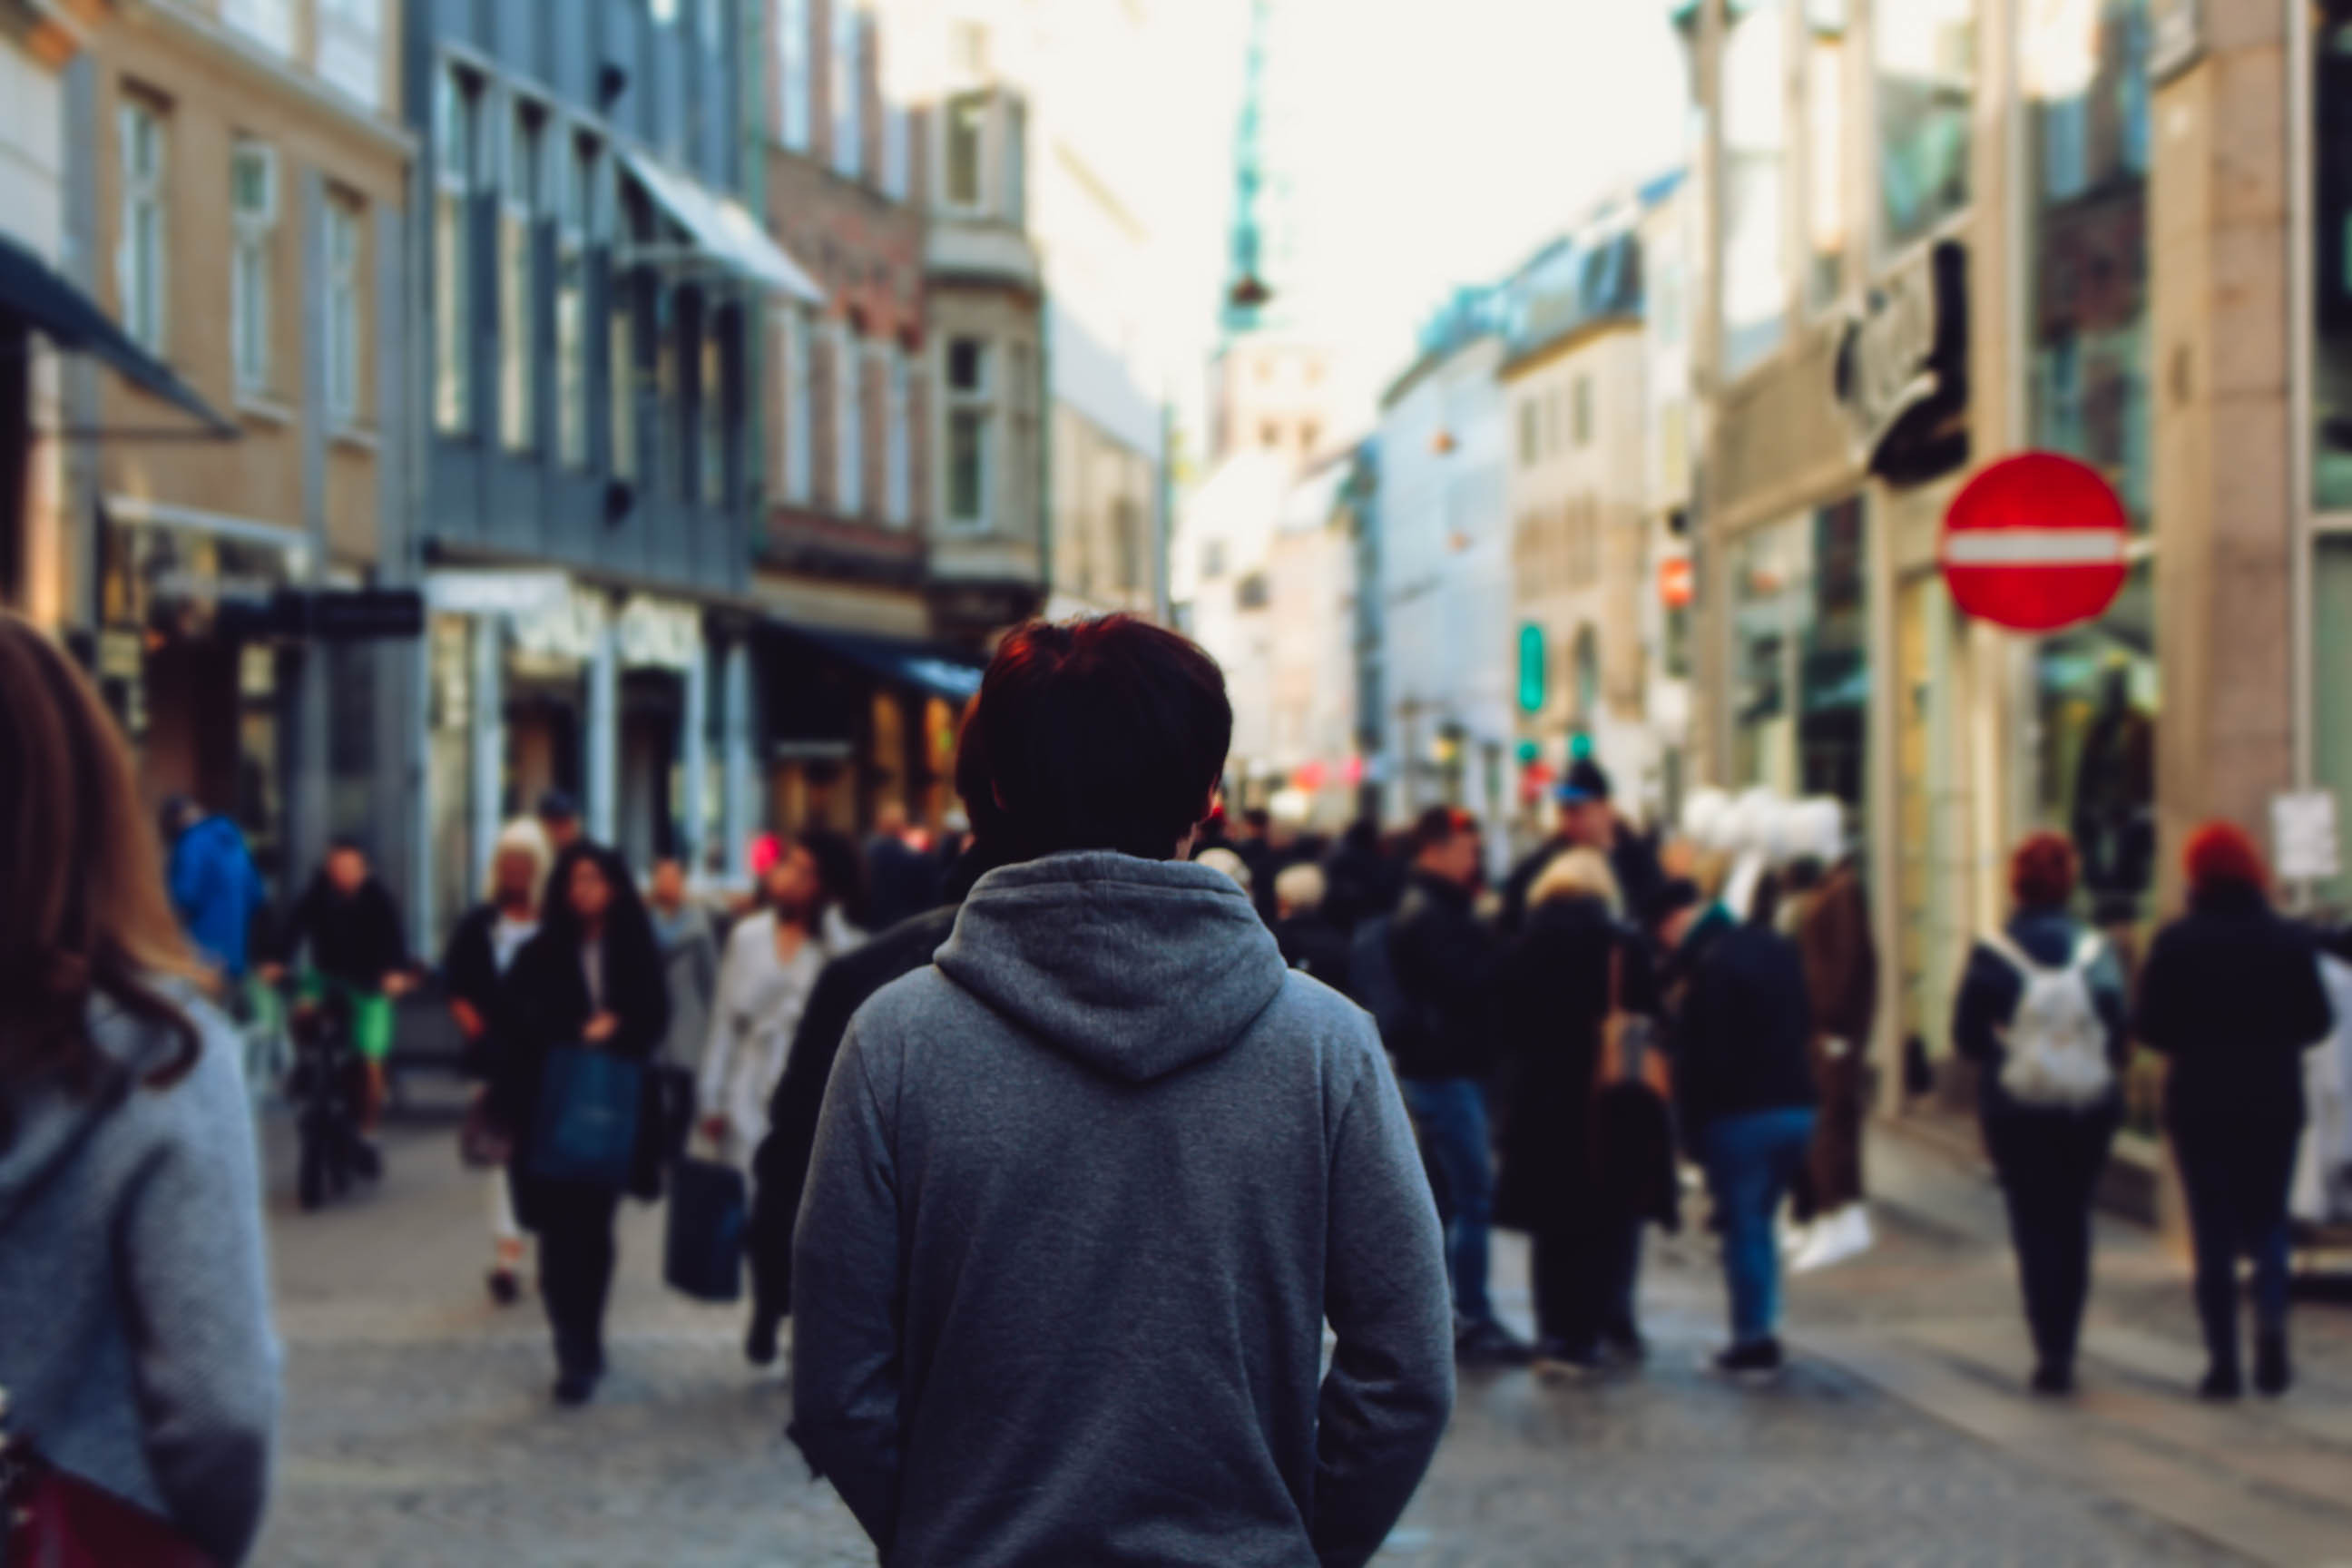 Life as a Lone Wolf: Why Do So Many Men Feel Lonely?